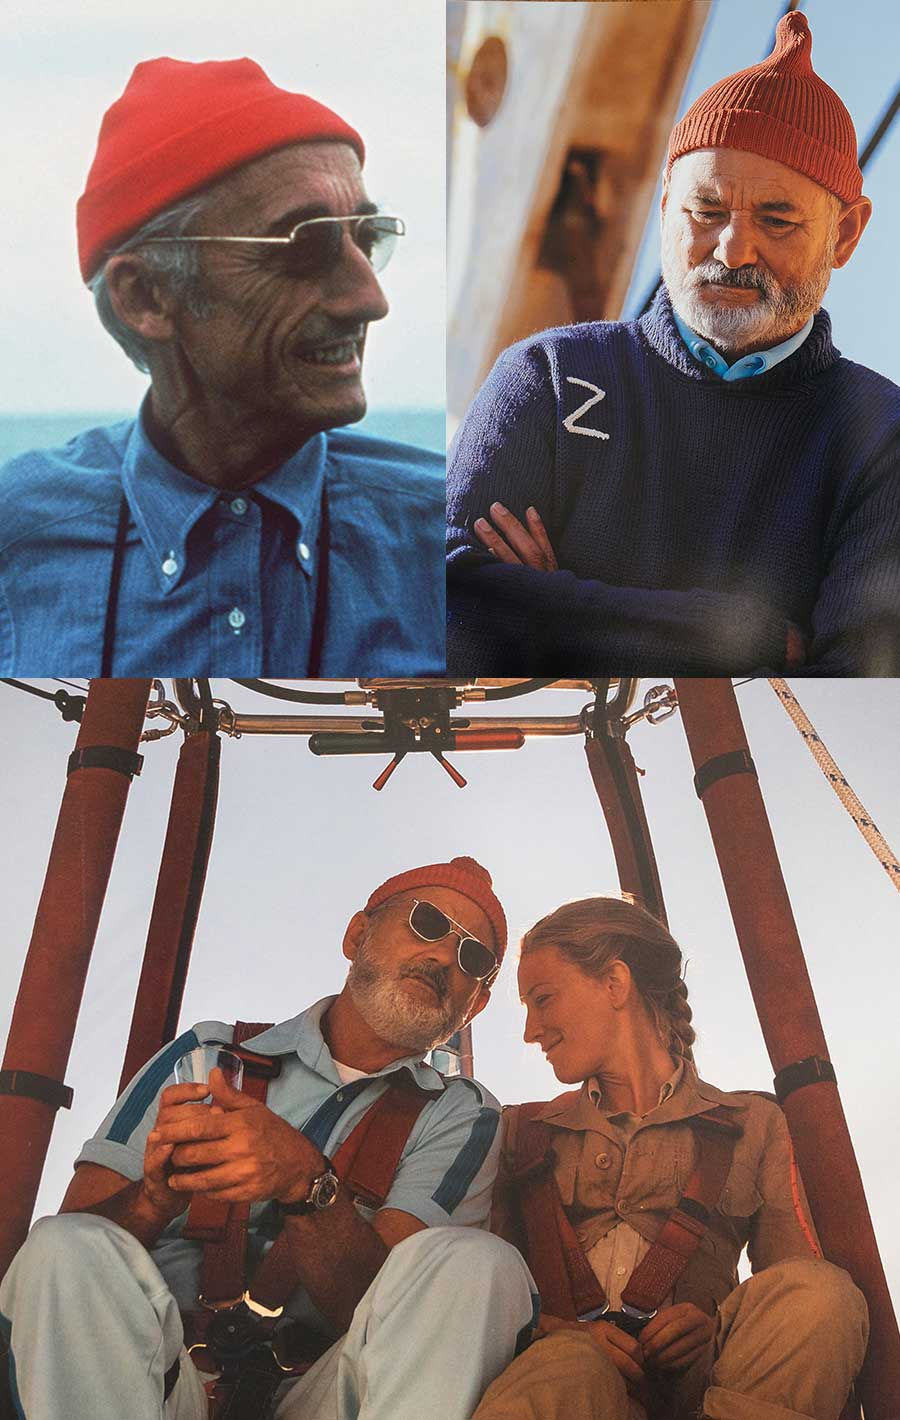 More Iphone Wallpapers The Life Aquatic With Steve Zissou Menswear At The Movies